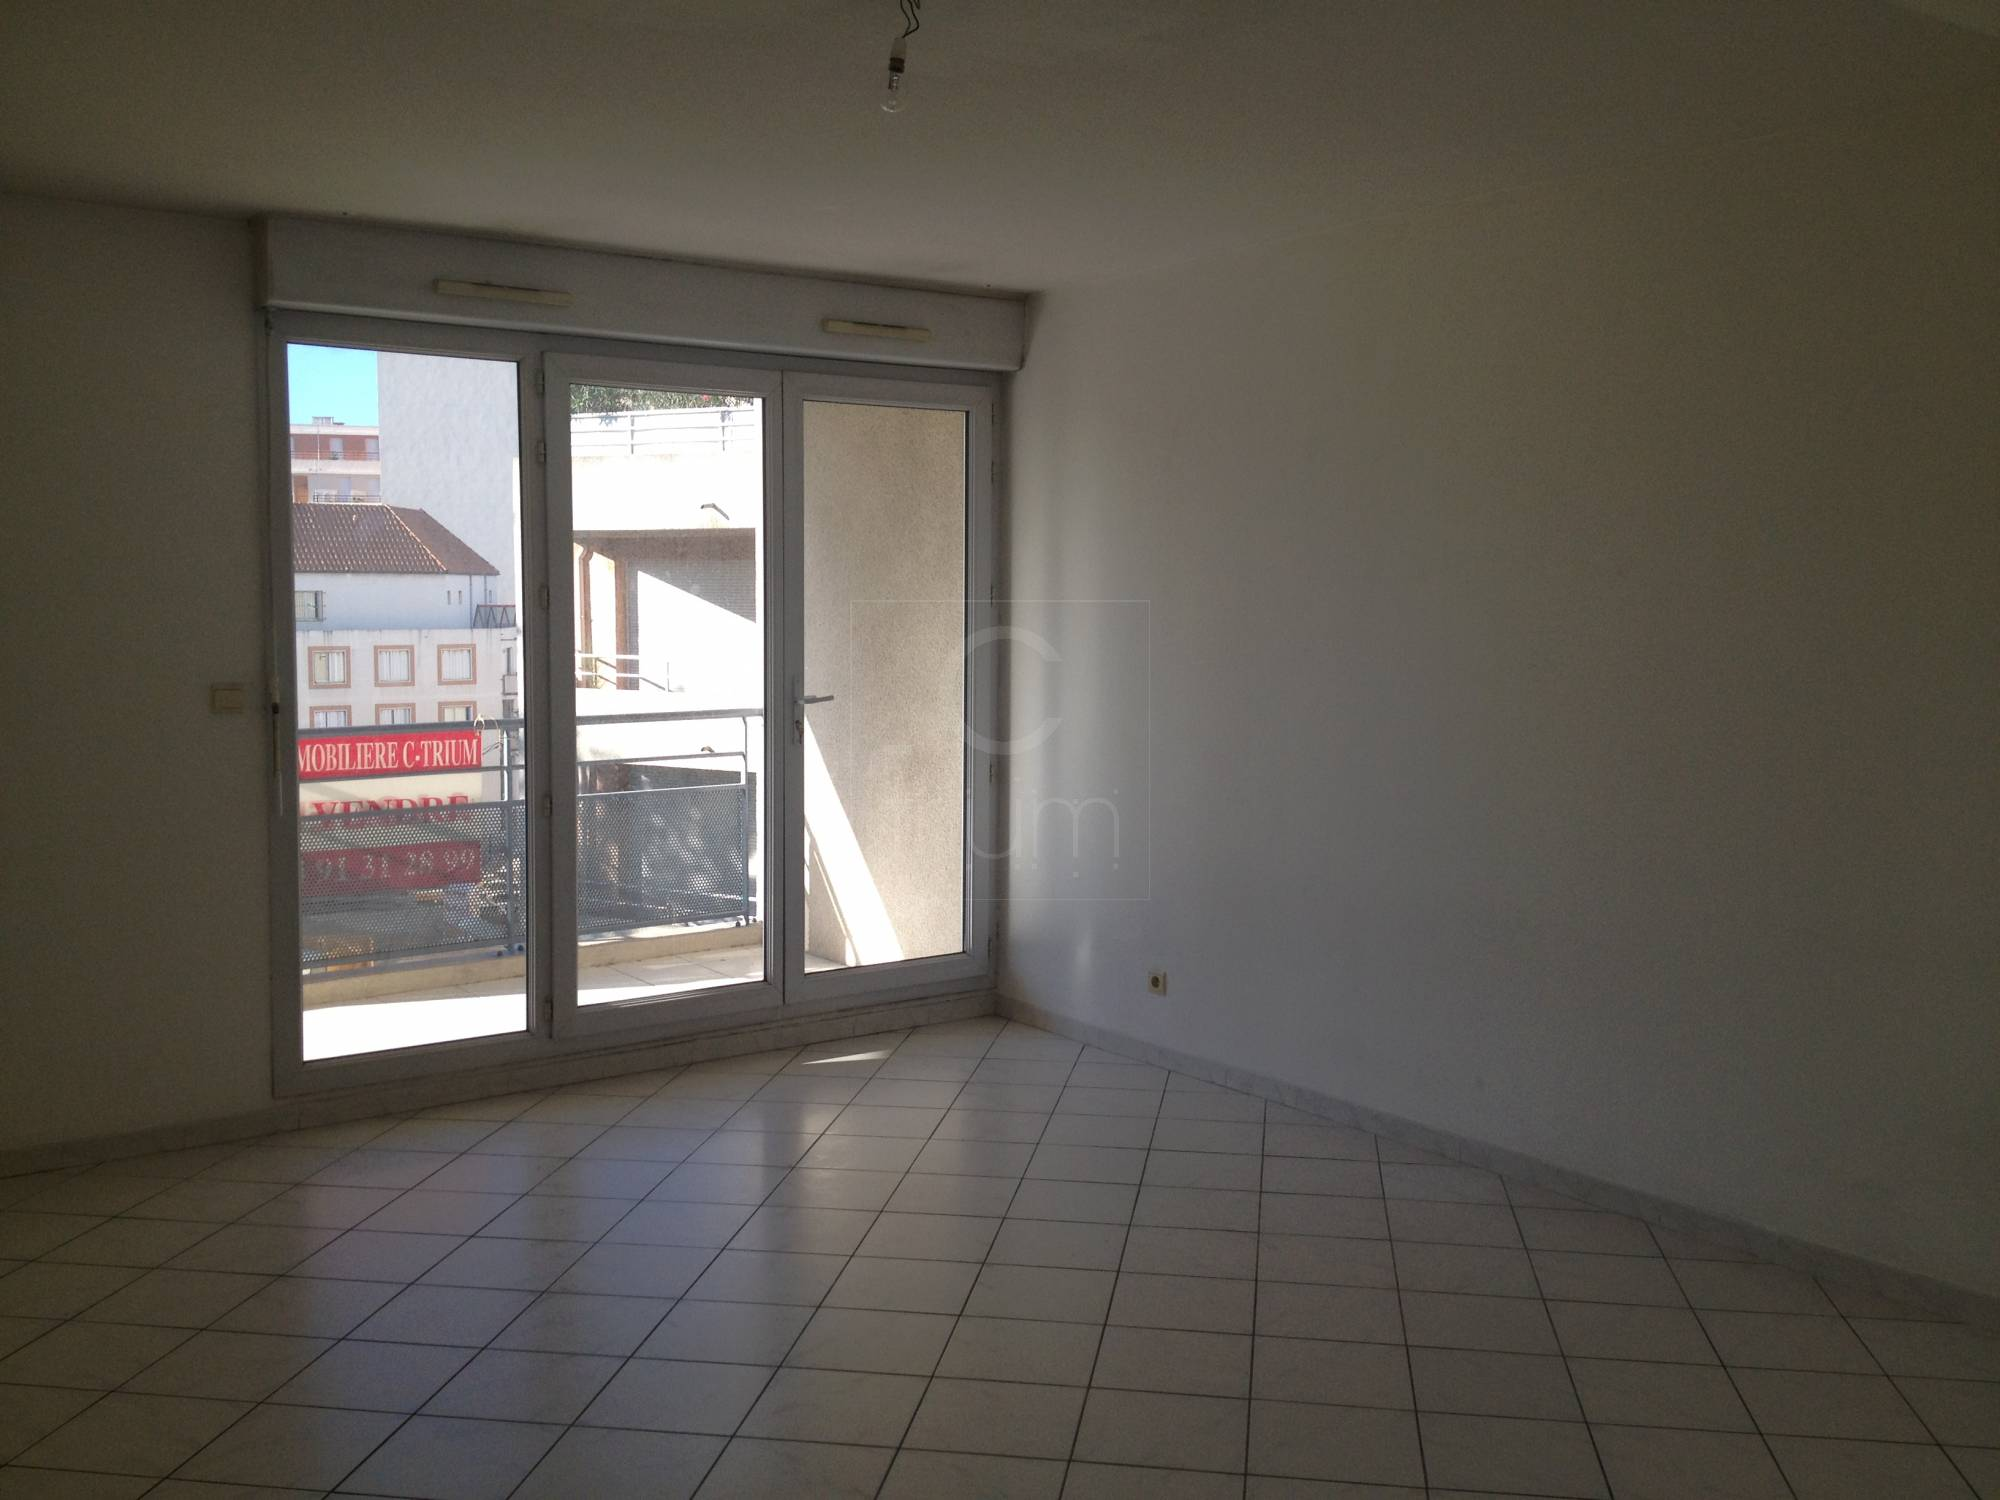 Location appartement t2 f2 marseille 8eme prado rouet for Location garage marseille 7eme